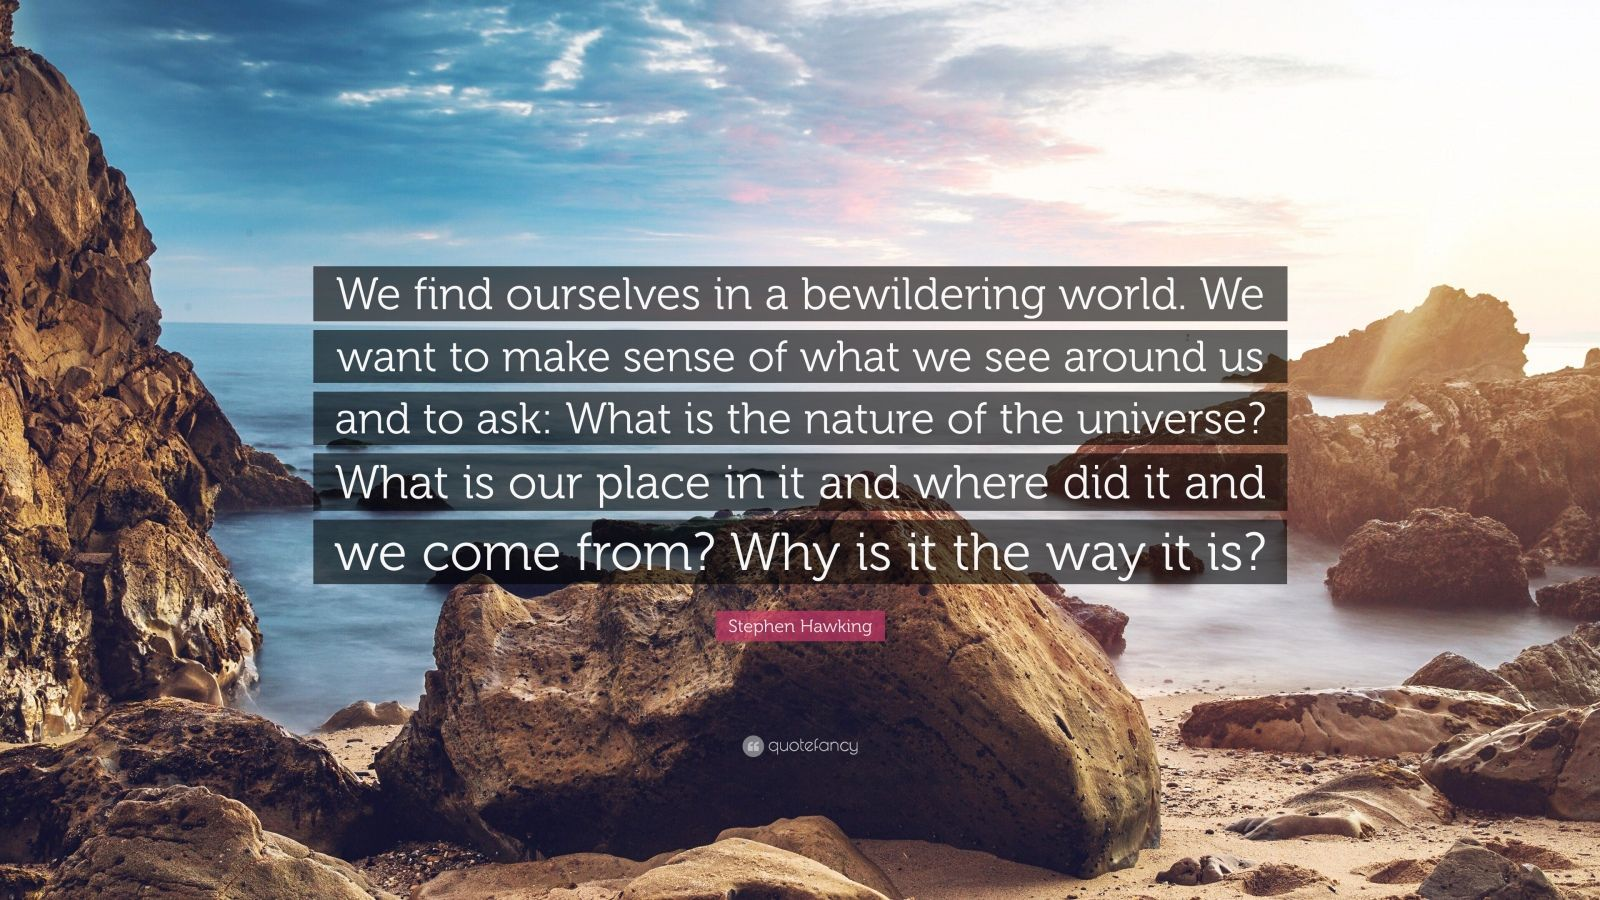 "Stephen Hawking Quote: ""We find ourselves in a bewildering world. We want to make sense of what we see around us and to ask: What is the nature of the universe? What is our place in it and where did it and we come from? Why is it the way it is?"""